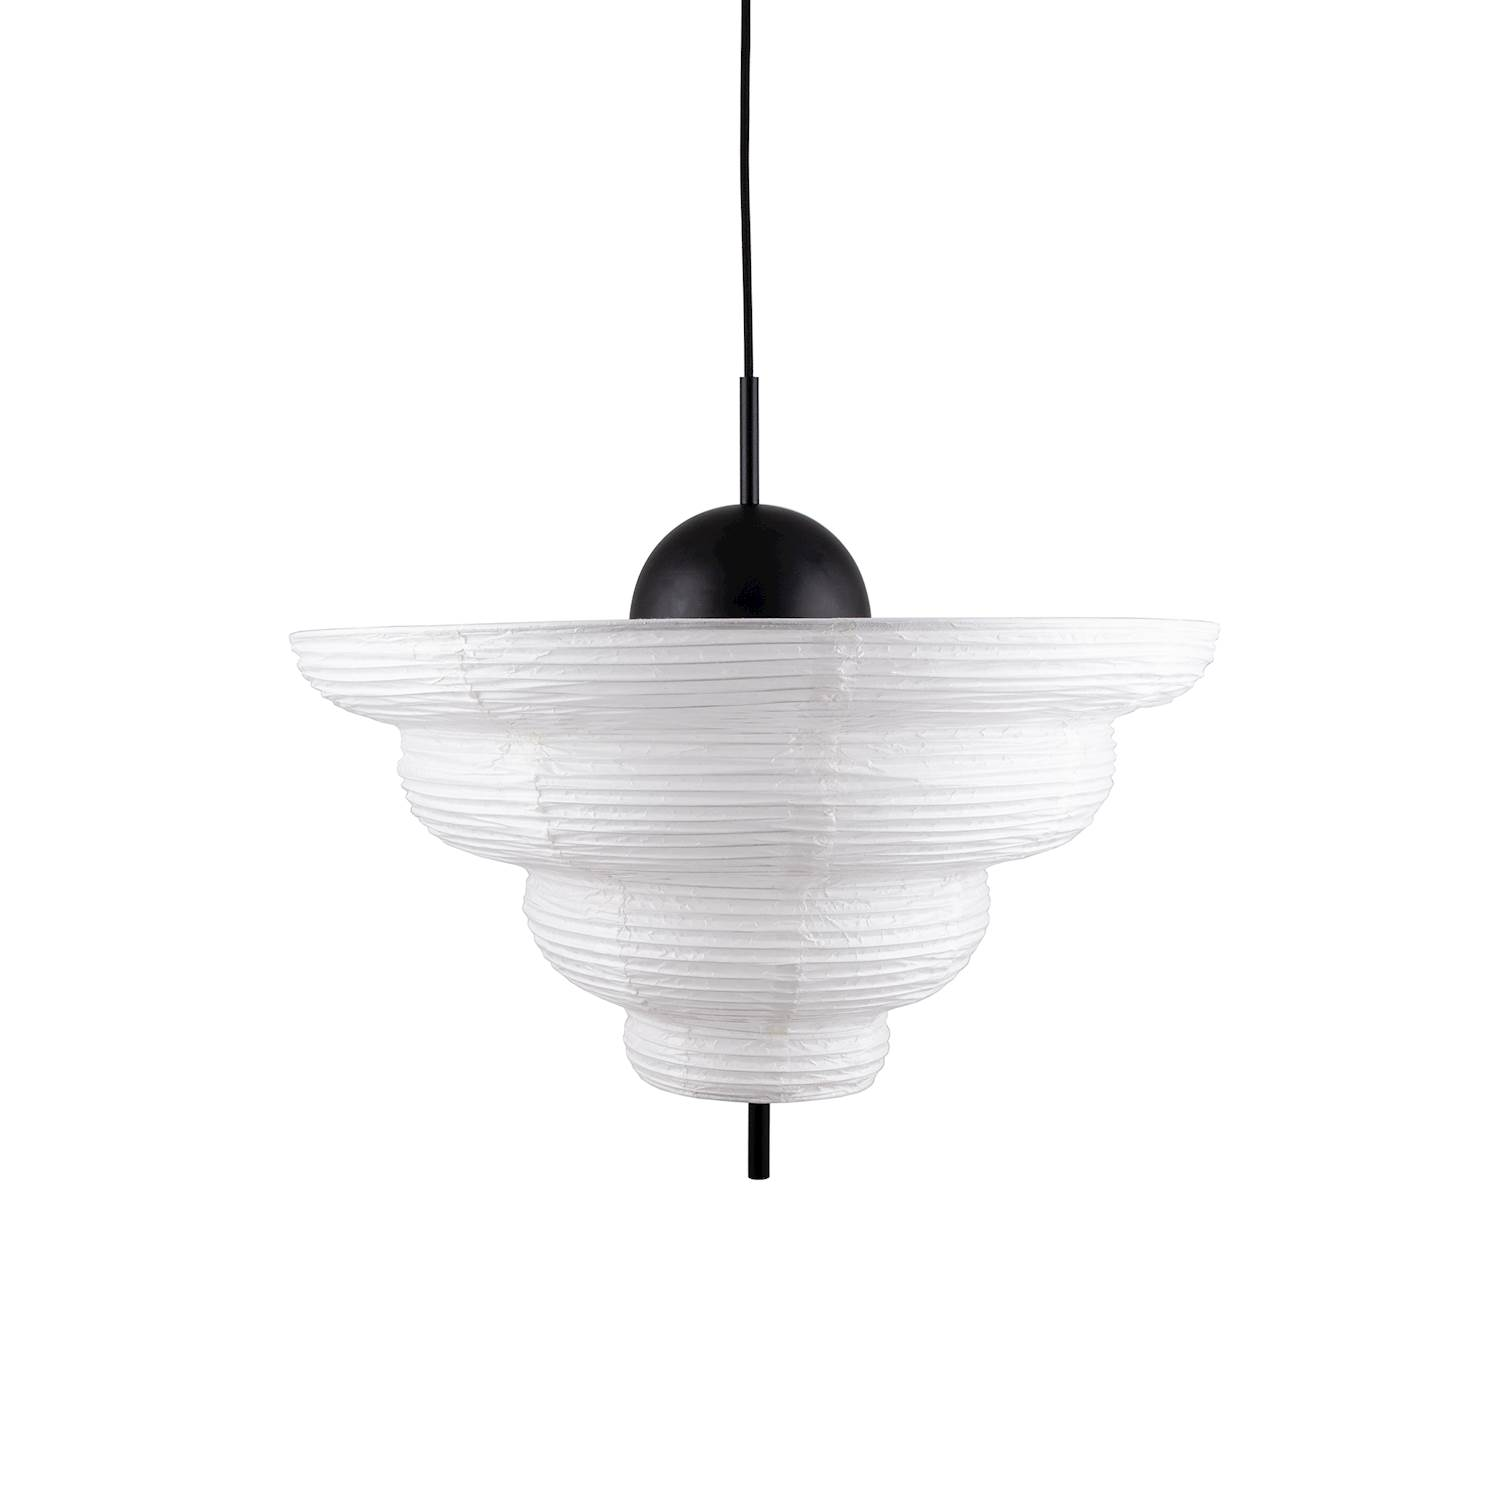 Globen Lighting Kyoto 60 170608 Vit